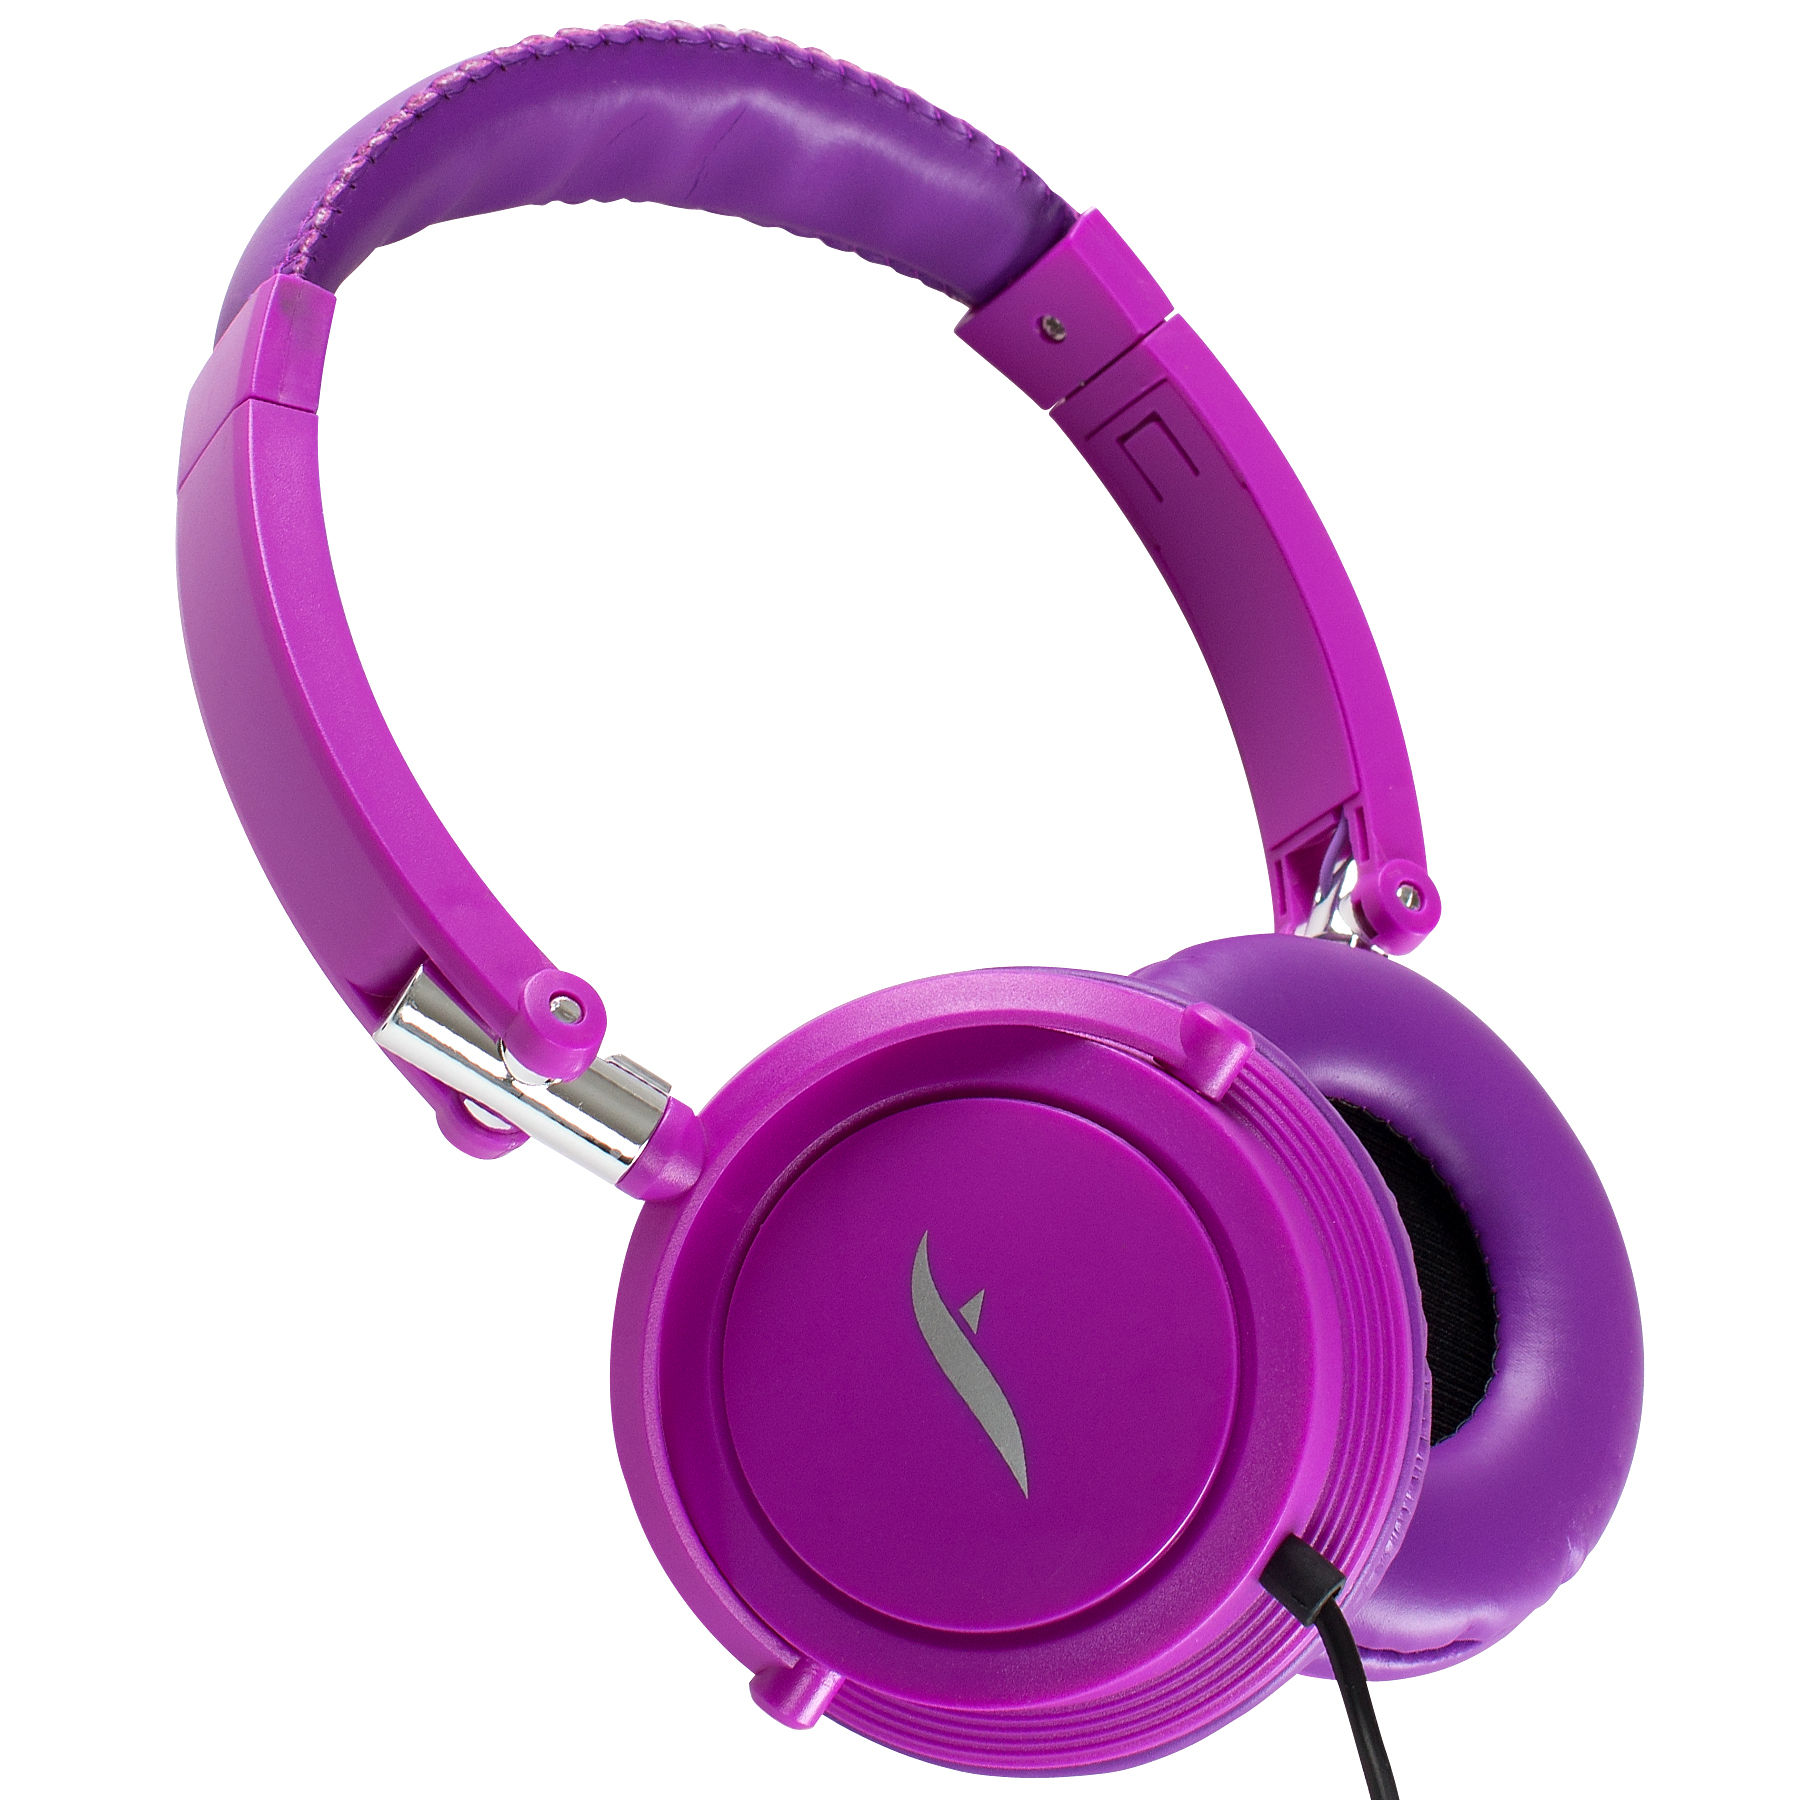 Frisby FHP-910 Portable Compact On-Ear Stereo Headphones w/ In-Line Microphone - Purple